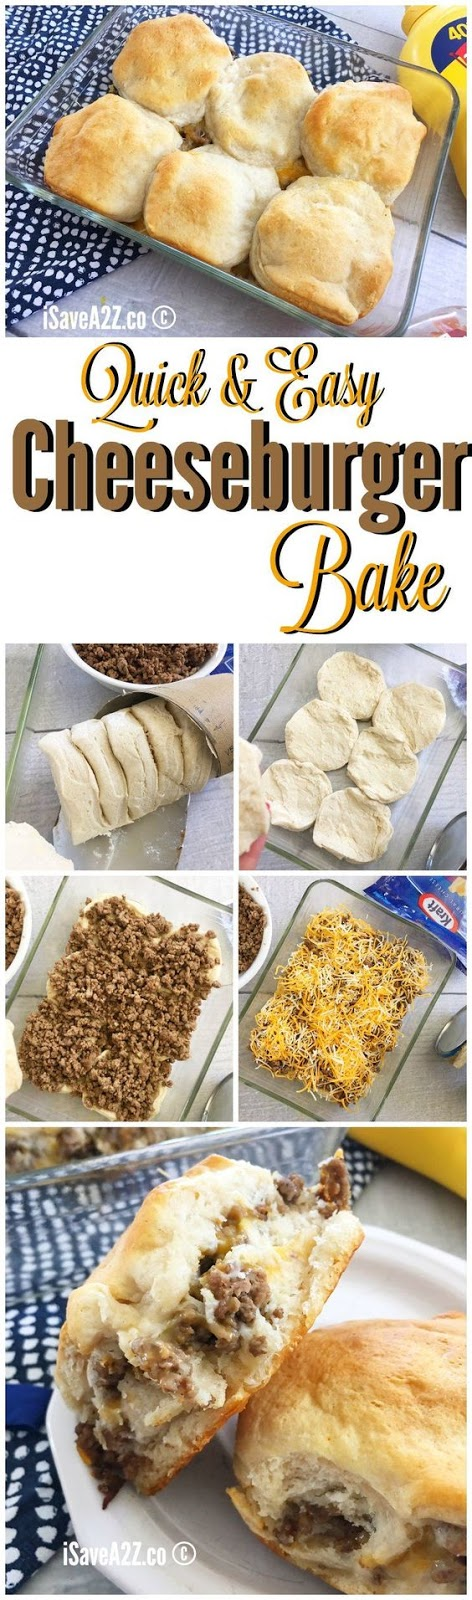 Quick and Easy Cheeseburger Bake Casserole  #Quick #Easy #Cheeseburger #Bake #Casserole   #DESSERTS #HEALTHYFOOD #EASY_RECIPES #DINNER #LAUCH #DELICIOUS #EASY #HOLIDAYS #RECIPE #SPECIAL_DIET #WORLD_CUISINE #CAKE #GRILL #APPETIZERS #HEALTHY_RECIPES #DRINKS #COOKING_METHOD #ITALIAN_RECIPES #MEAT #VEGAN_RECIPES #COOKIES #PASTA #FRUIT #SALAD #SOUP_APPETIZERS #NON_ALCOHOLIC_DRINKS #MEAL_PLANNING #VEGETABLES #SOUP #PASTRY #CHOCOLATE #DAIRY #ALCOHOLIC_DRINKS #BULGUR_SALAD #BAKING #SNACKS #BEEF_RECIPES #MEAT_APPETIZERS #MEXICAN_RECIPES #BREAD #ASIAN_RECIPES #SEAFOOD_APPETIZERS #MUFFINS #BREAKFAST_AND_BRUNCH #CONDIMENTS #CUPCAKES #CHEESE #CHICKEN_RECIPES #PIE #COFFEE #NO_BAKE_DESSERTS #HEALTHY_SNACKS #SEAFOOD #GRAIN #LUNCHES_DINNERS #MEXICAN #QUICK_BREAD #LIQUOR